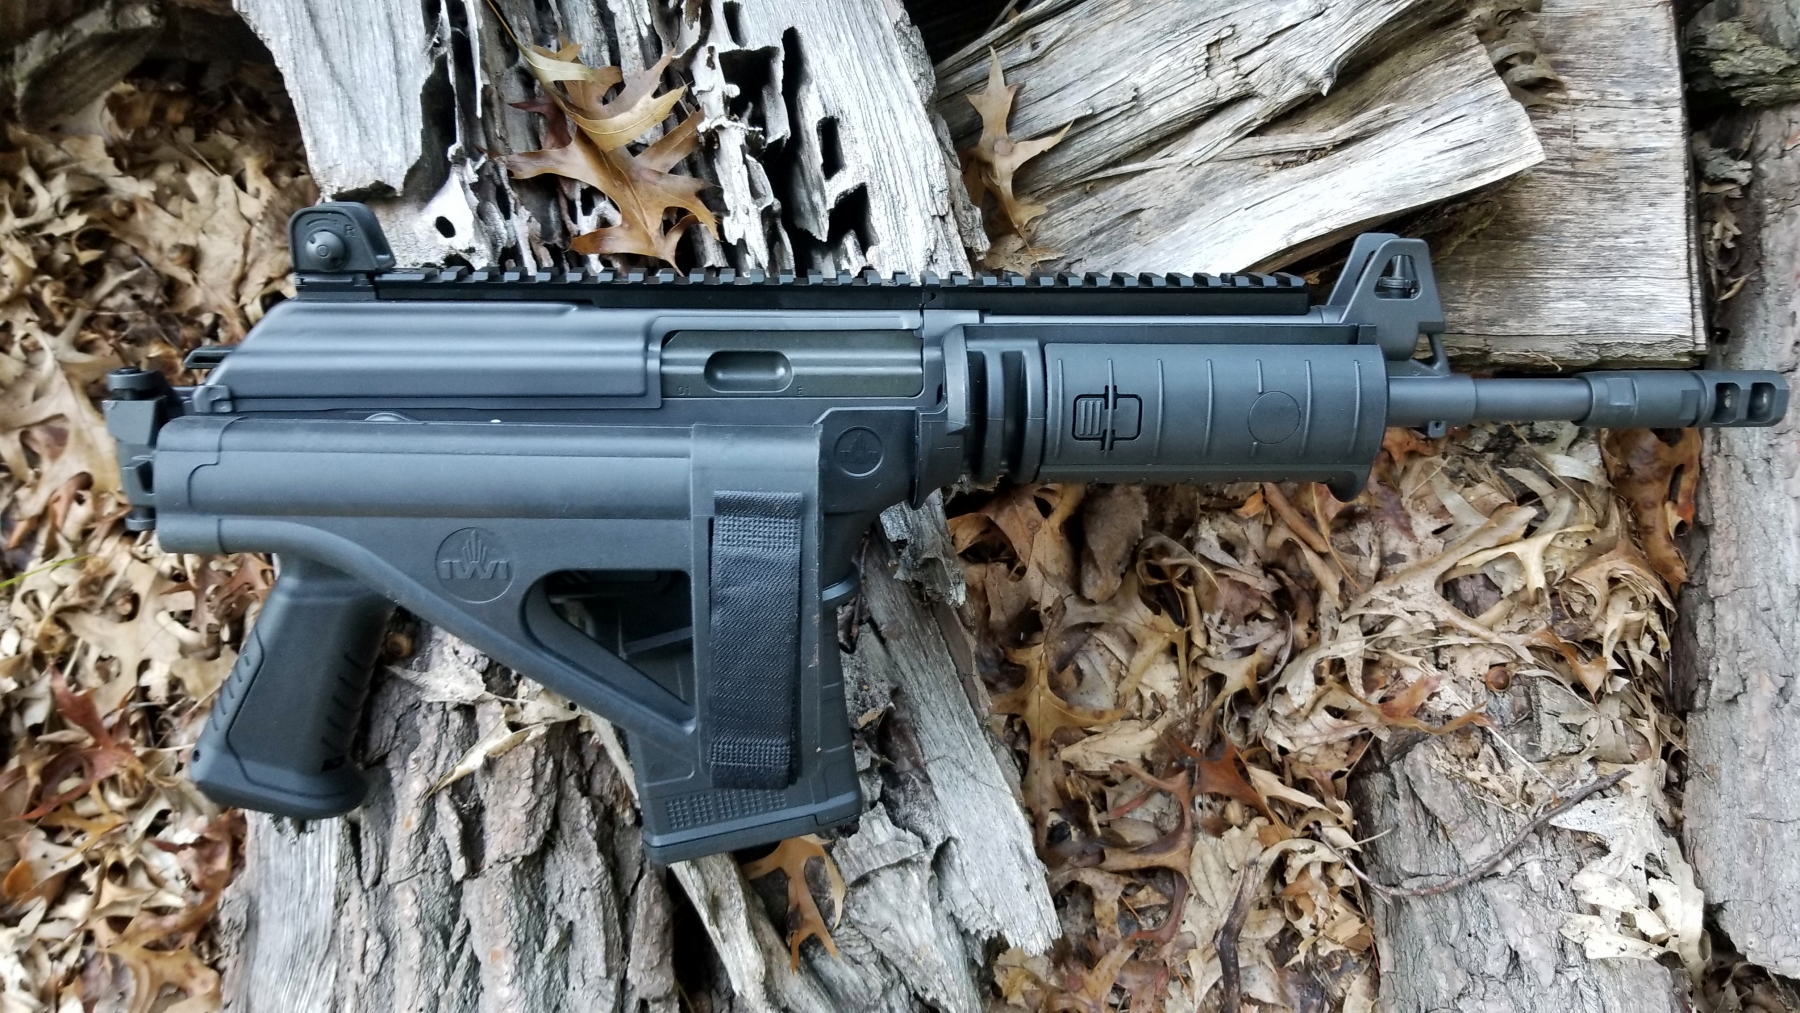 SOB brace folded. Note how it is below the ejection port.  The front sight is protected.